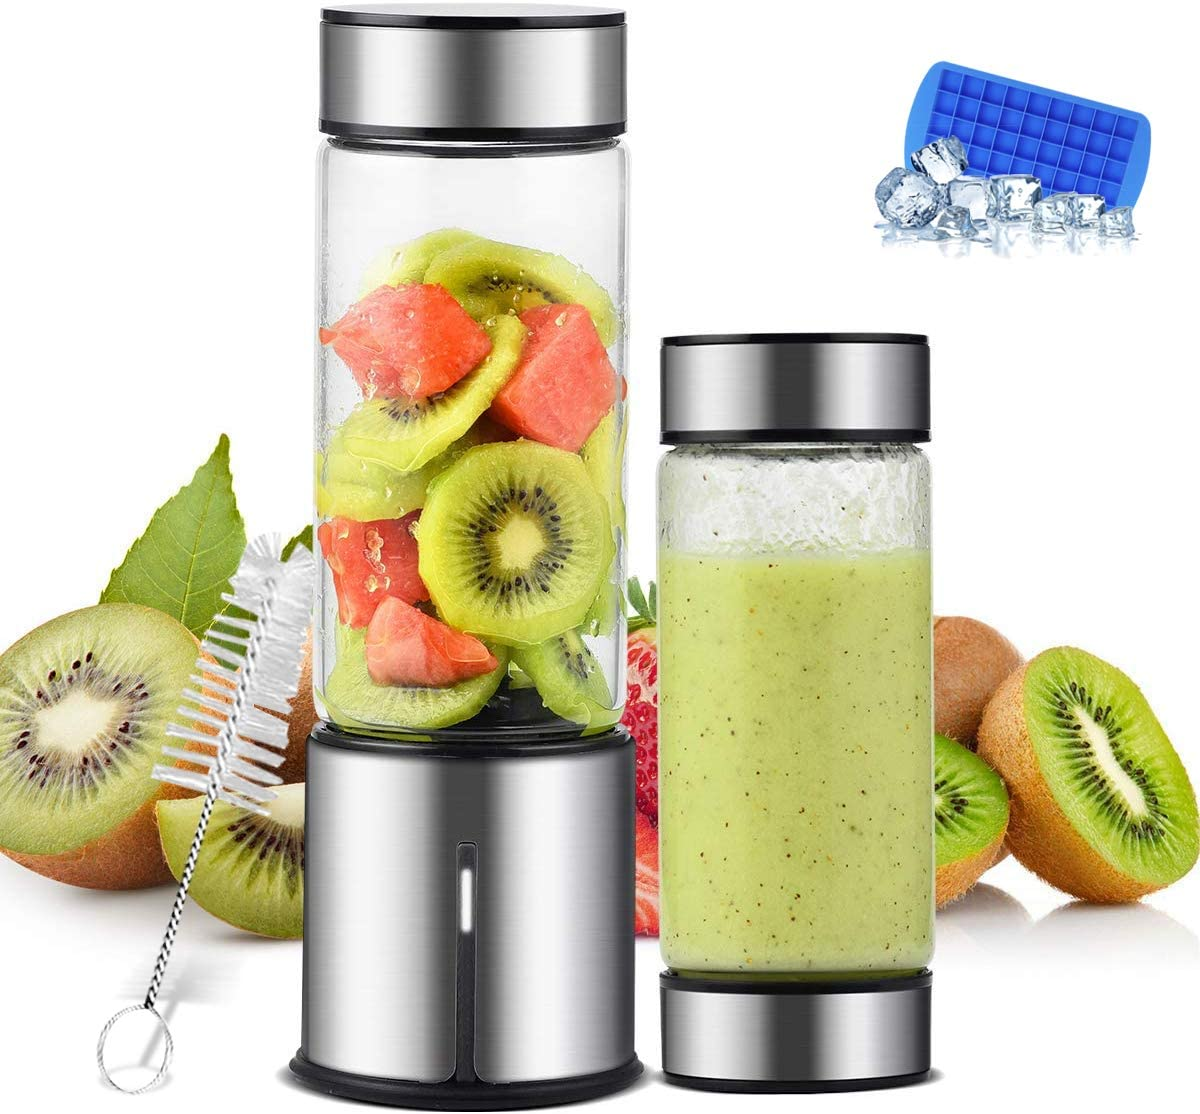 TTLIFE 2 Cup Cover Portable Blender,USB Rechargeable Cordless Smoothie Glass Blender,Mini Jucier Cup Travel Sports Bottle